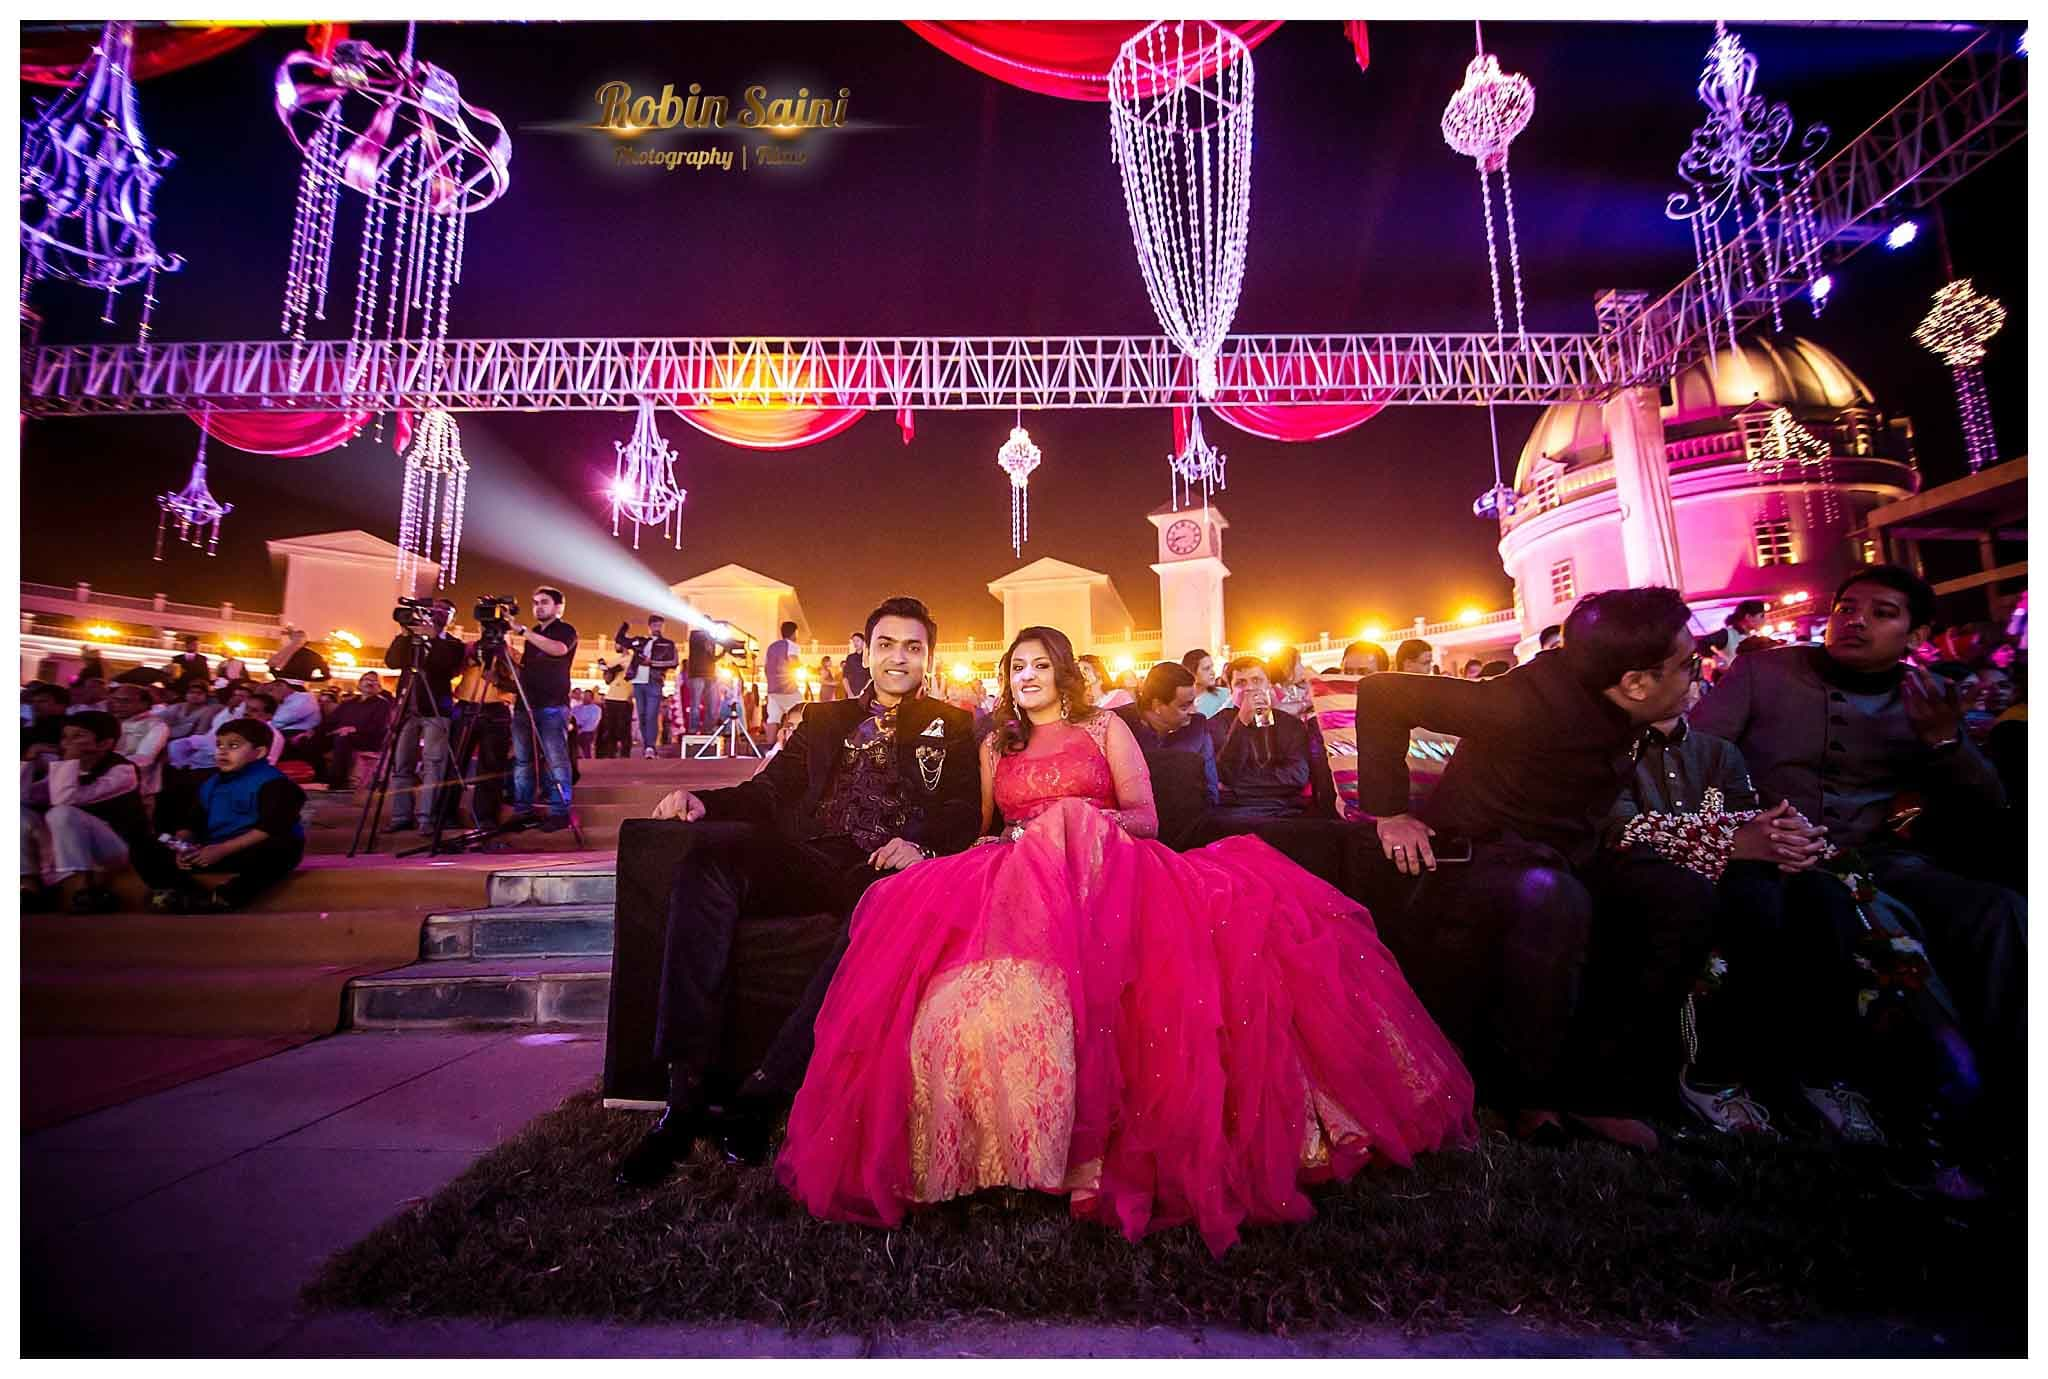 couple in sangeet:robin saini photography